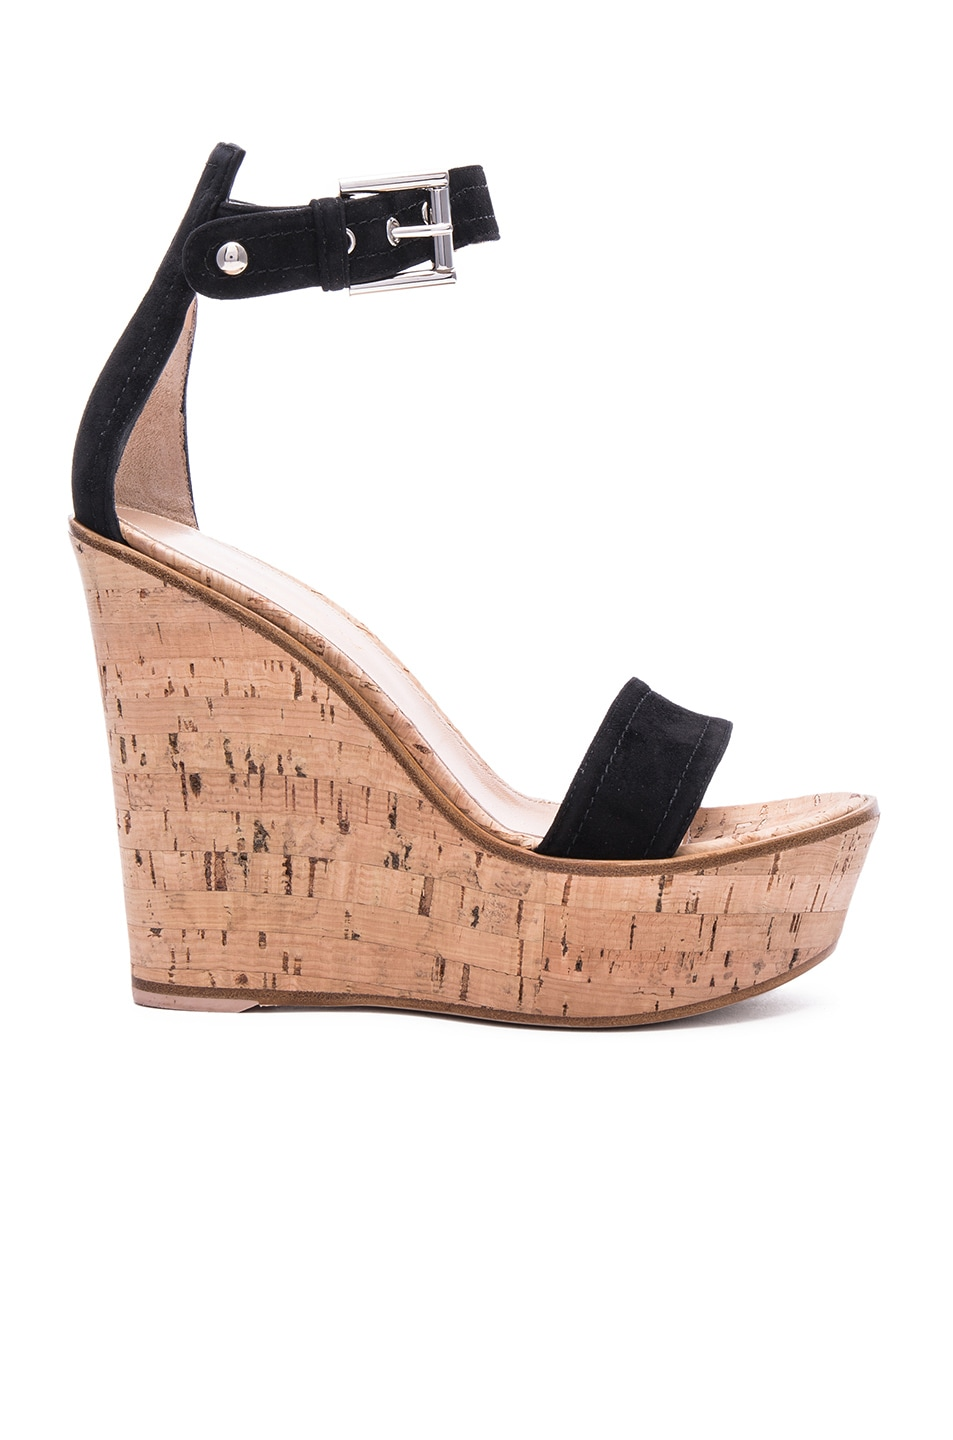 discount choice Sergio Rossi Cork Ankle Strap Wedges sale get to buy clearance online discount countdown package official site online 3YhgqaQ